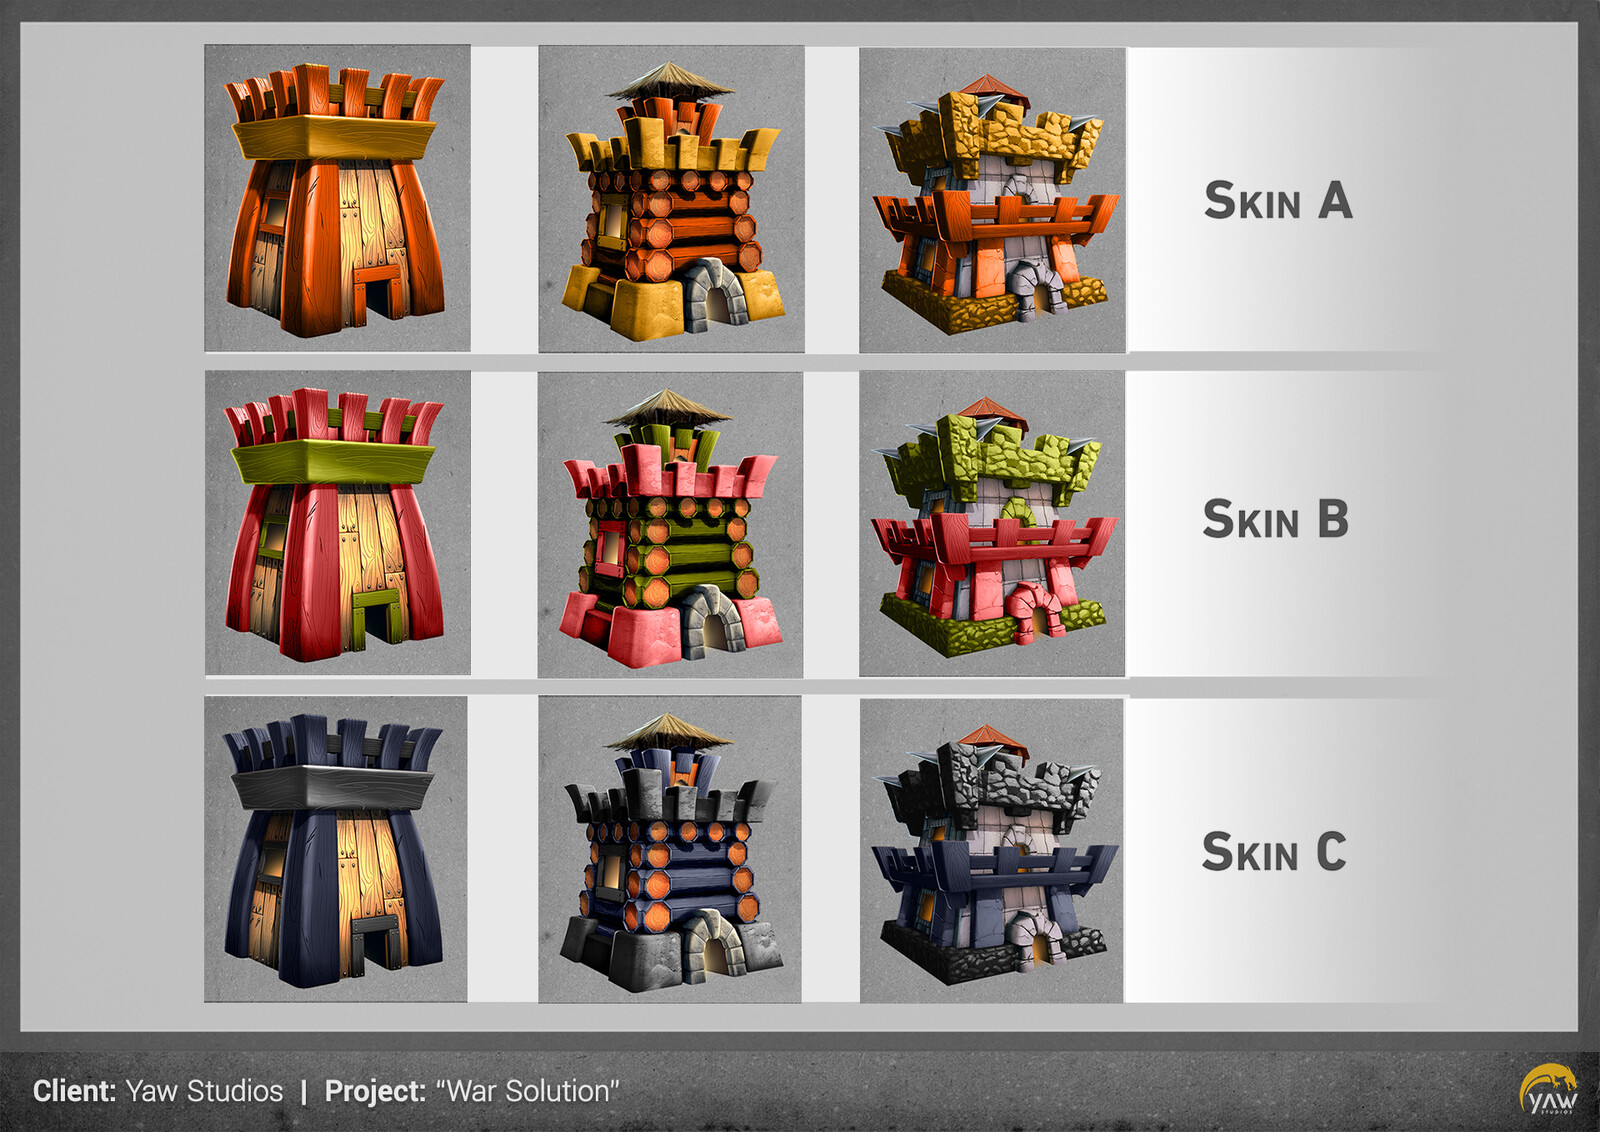 Here are a few skin options...